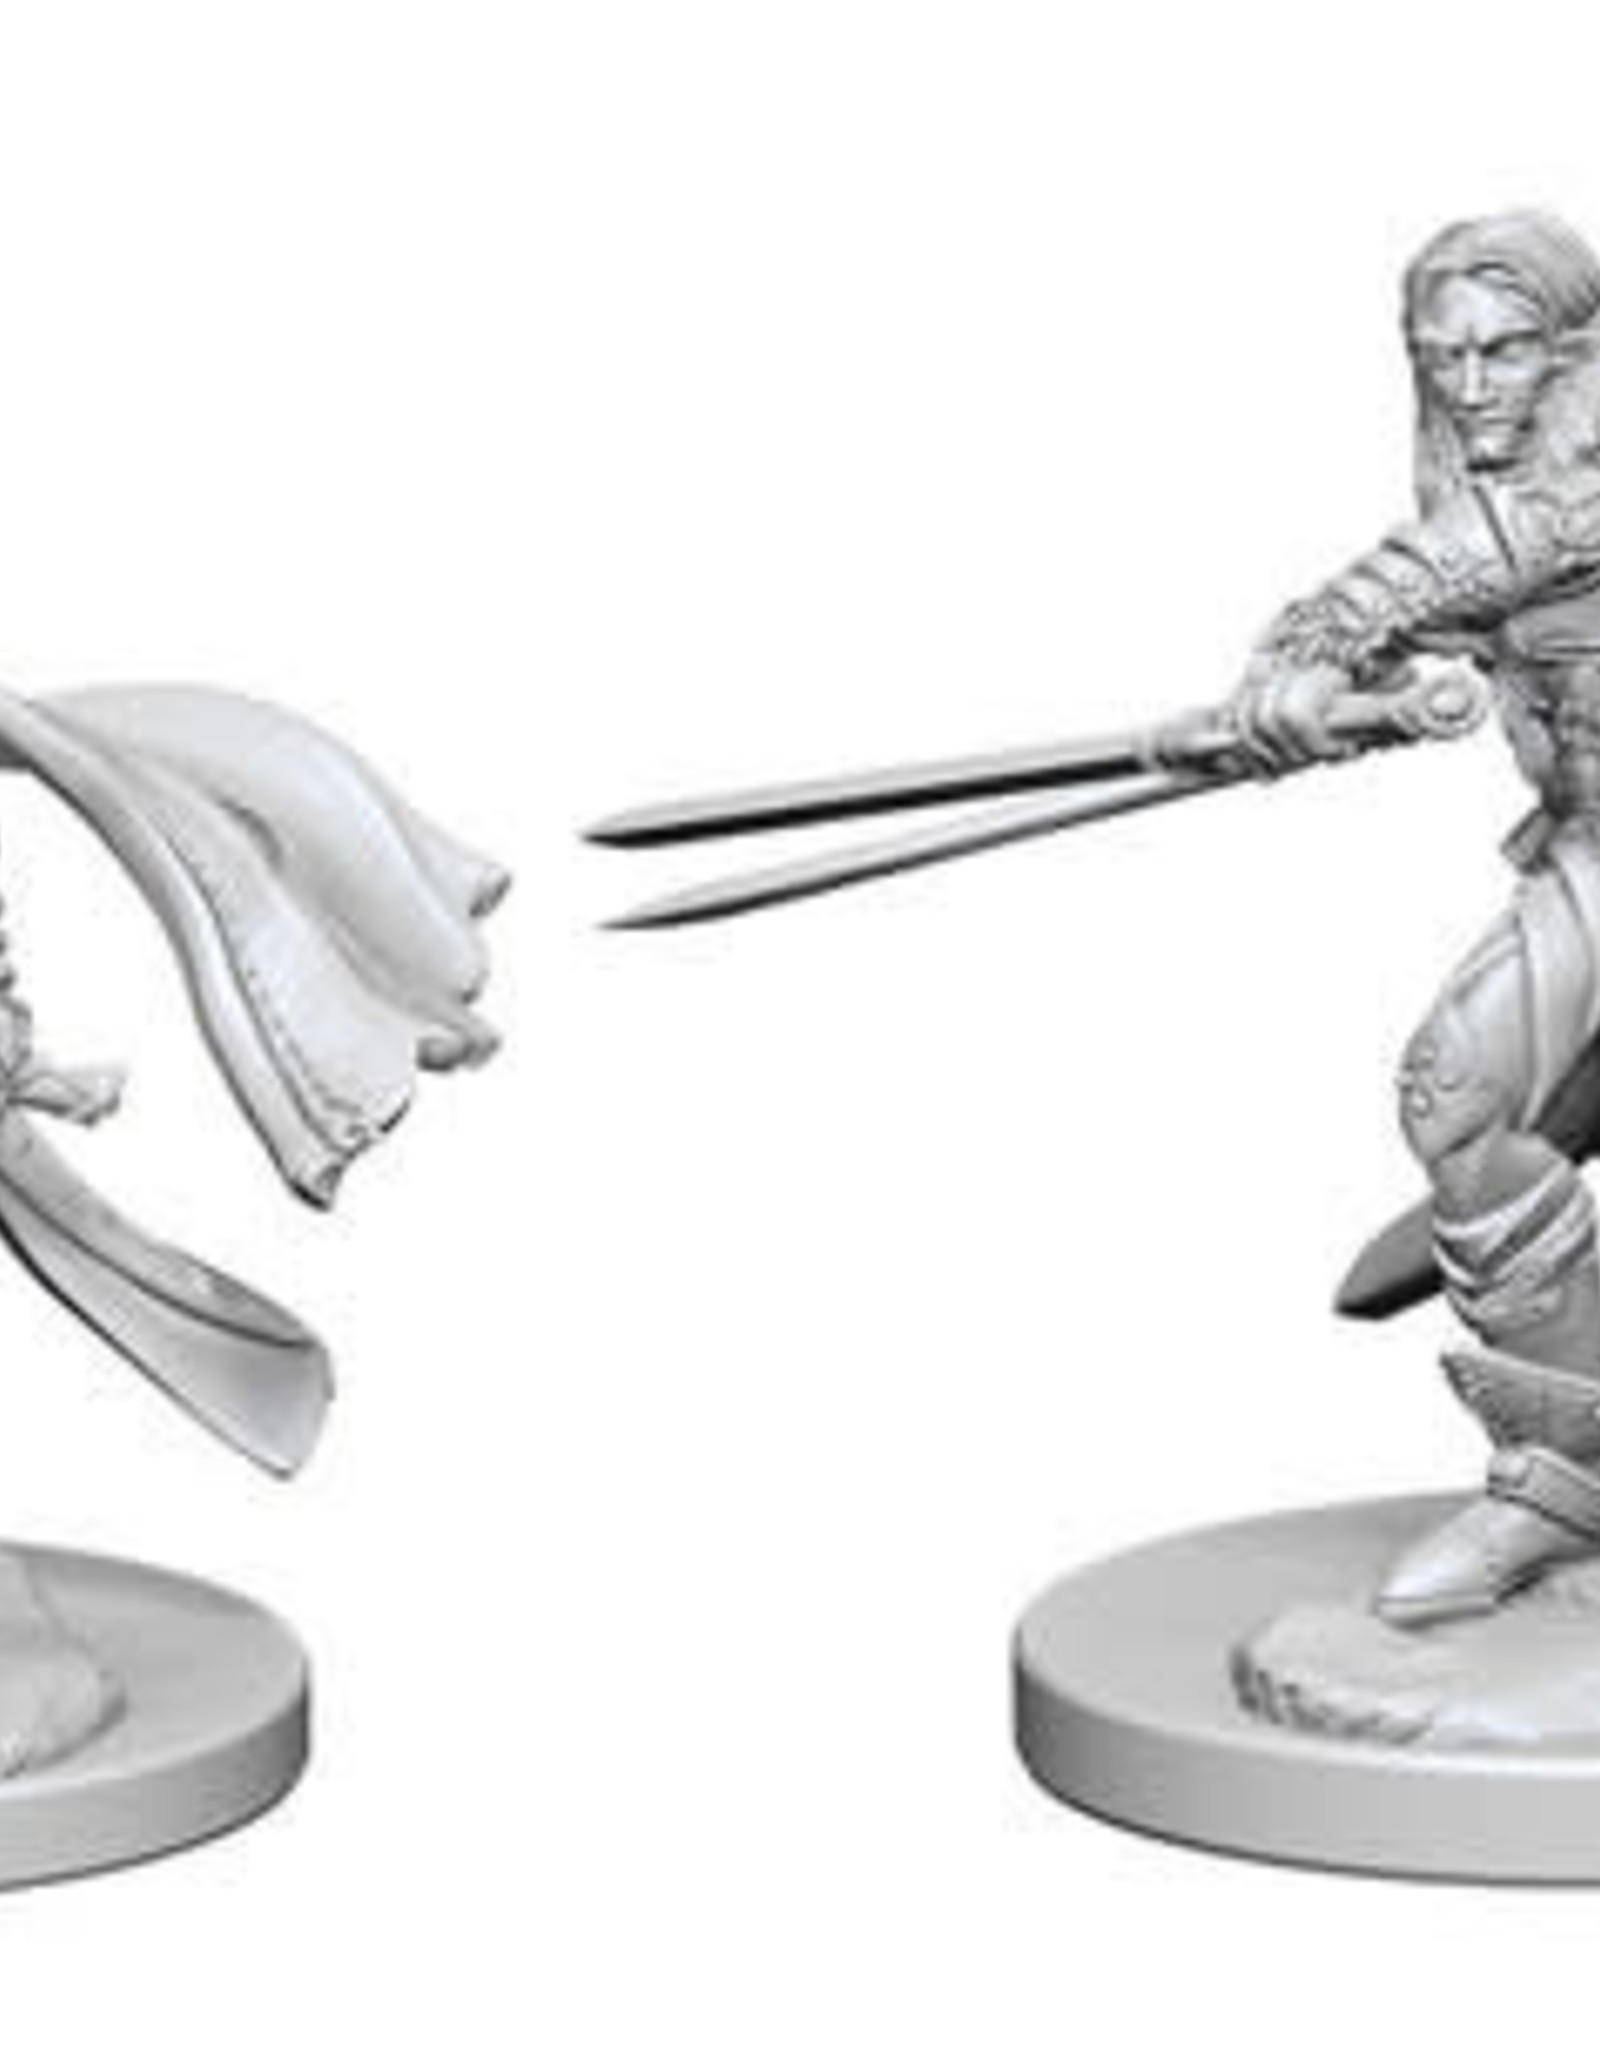 WizKids D&D Nolzur Elf Ranger  (He/Him/They/Them)